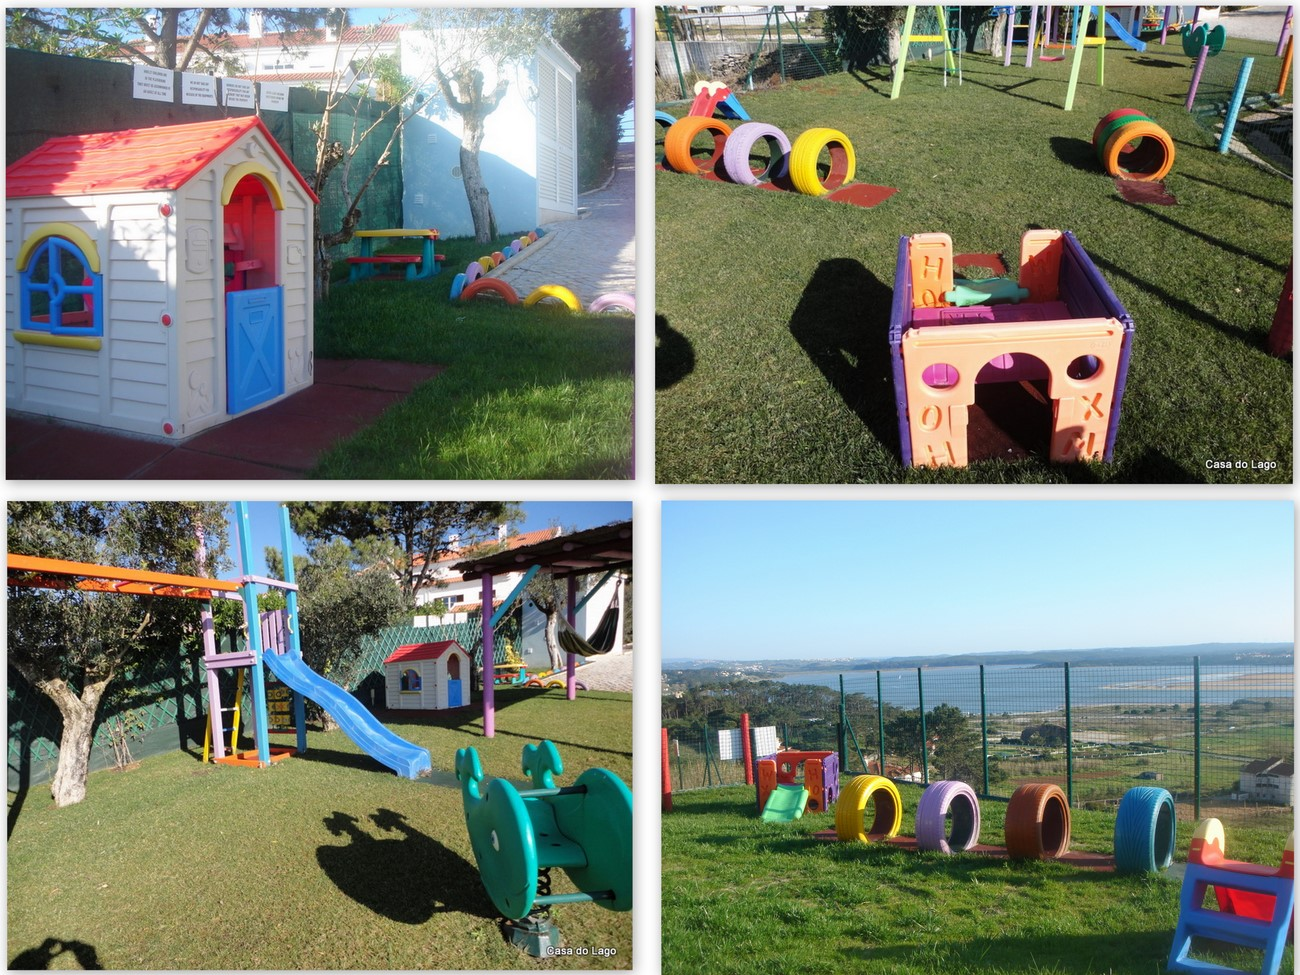 Children playground at Casa do Lago